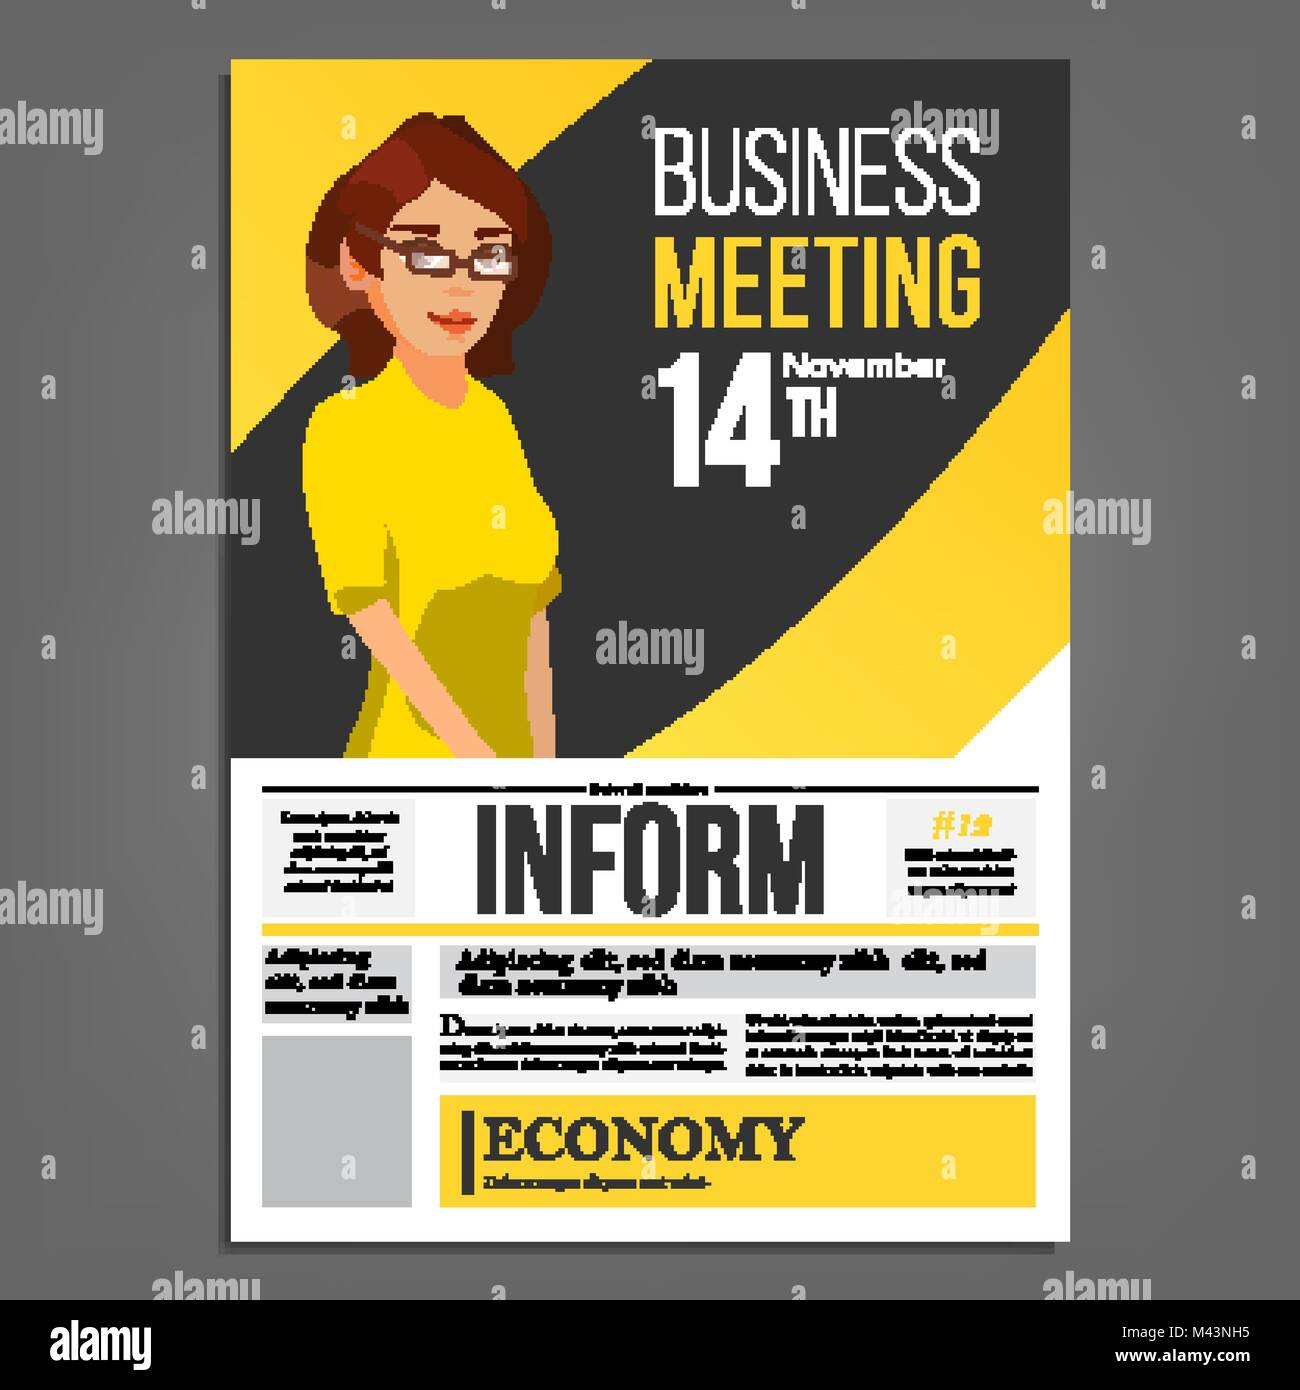 Business meeting poster vector business woman invitation and date business meeting poster vector business woman invitation and date conference template a4 size cover annual report flat cartoon illustration stopboris Images